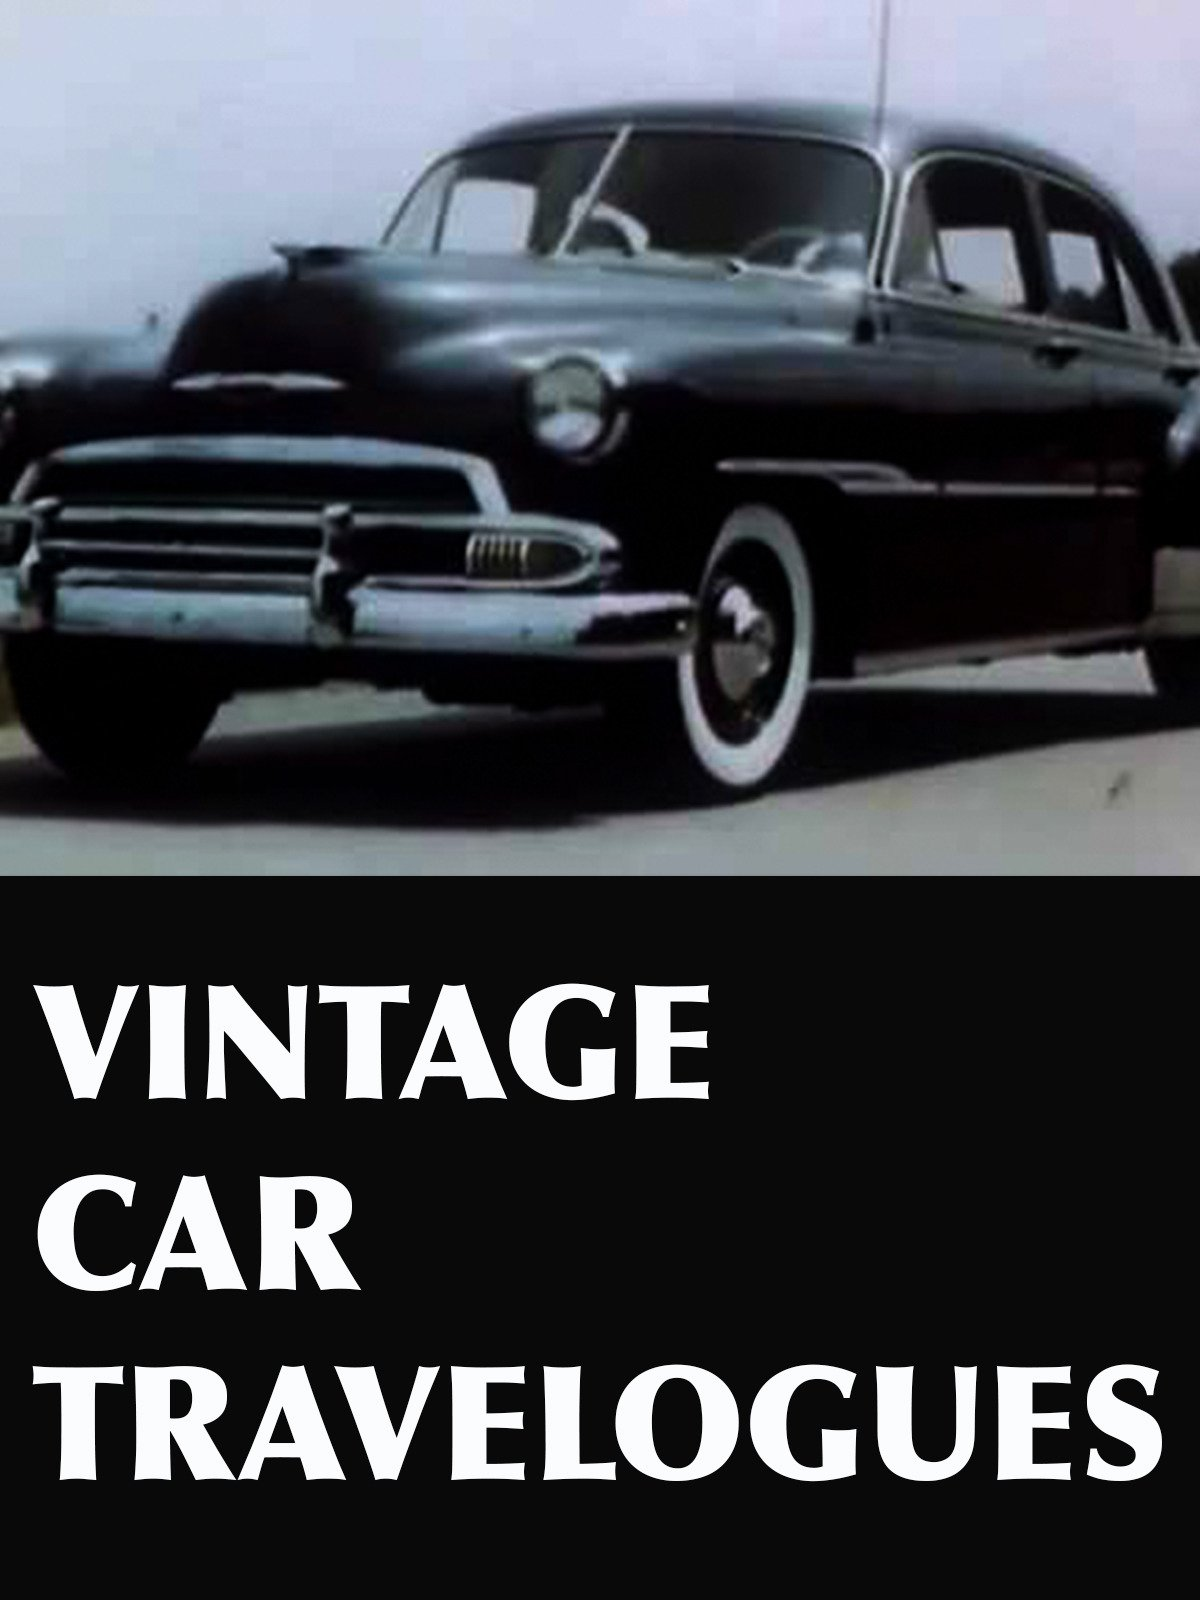 Vintage Car Travelogues